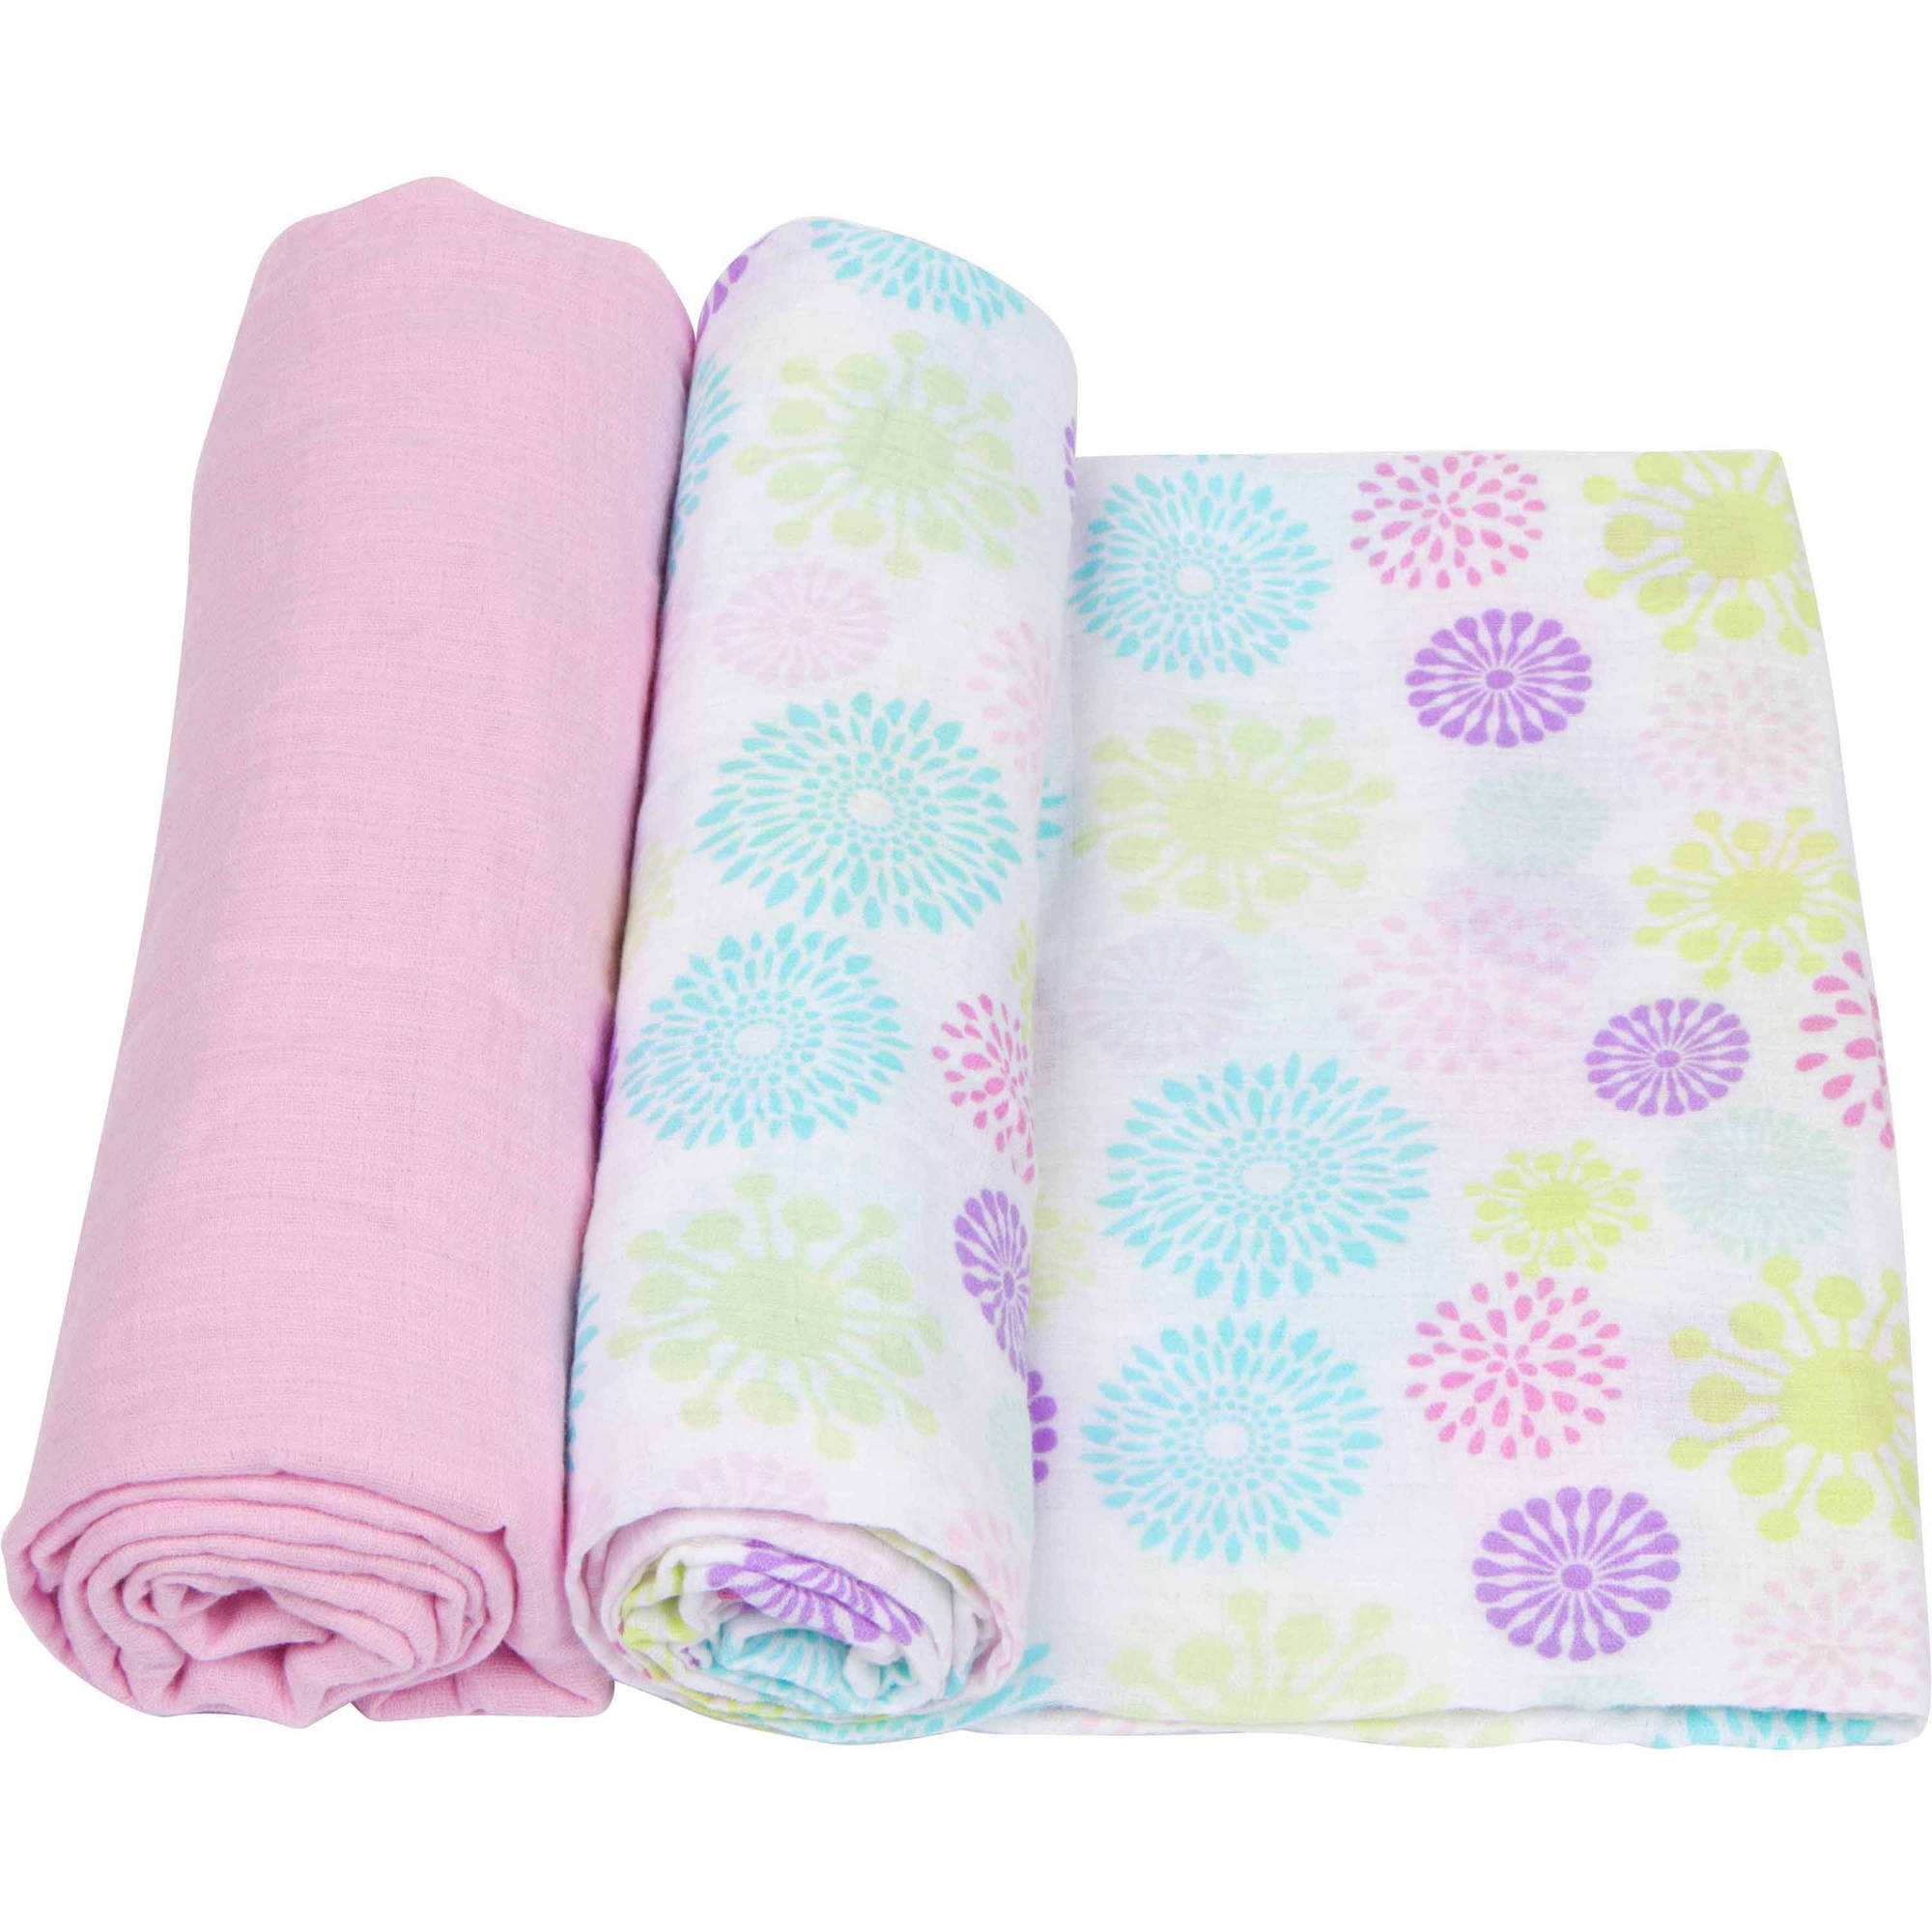 MiracleWare Muslin Cotton Swaddle, 2pk